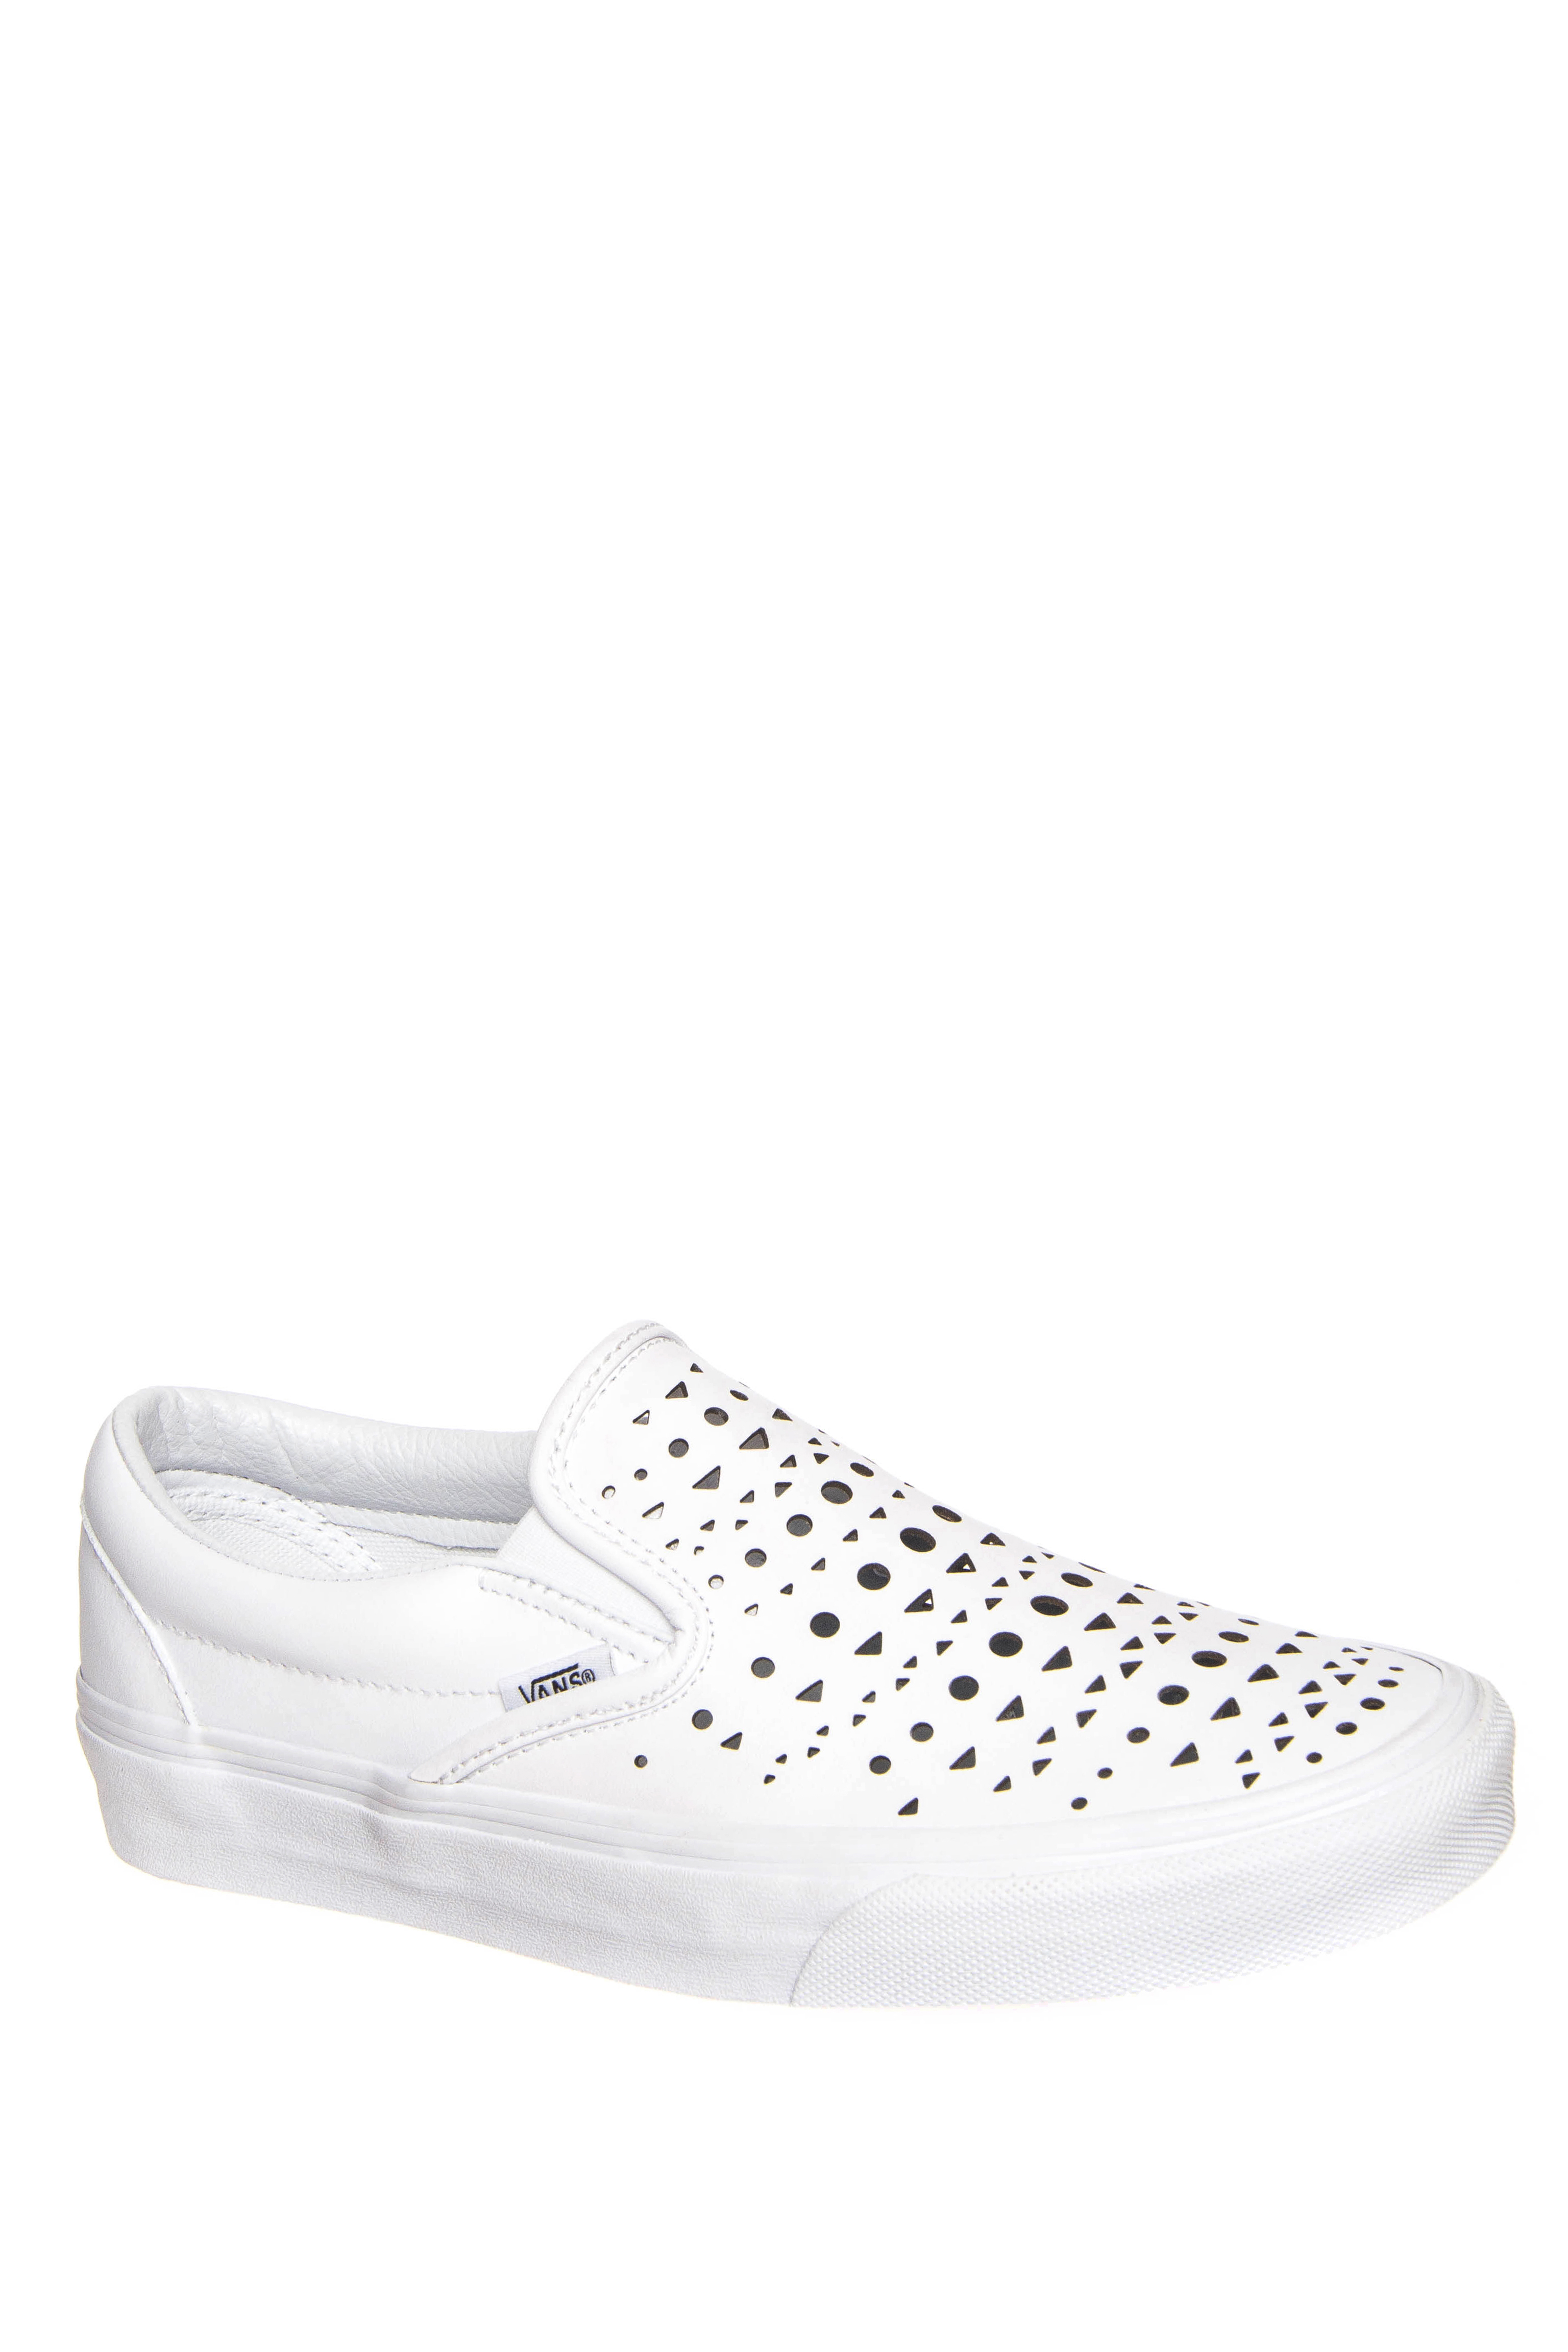 Vans Classic Cut Out Geo Slip-On Sneakers - True White